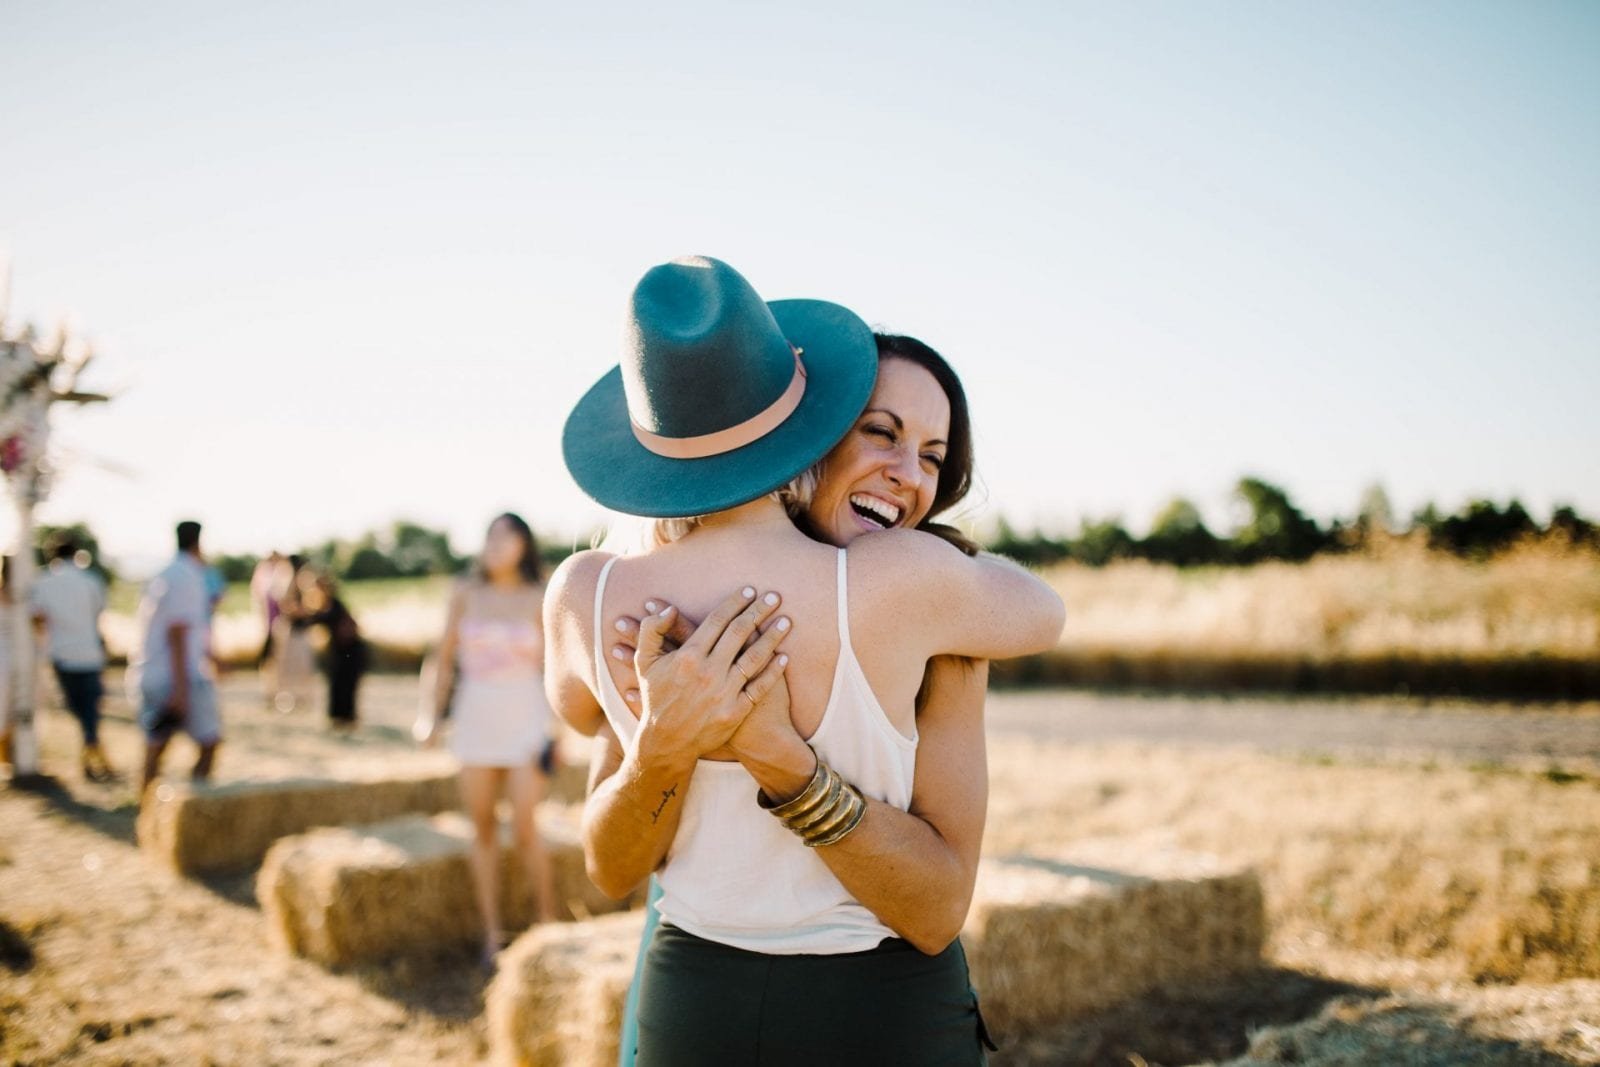 Park Winters Summerland 2019 | Northern California Wedding Event Venue | Summer Sunset Party Inspiration | Fashion Blogger Outfit | SarahMichiko.com